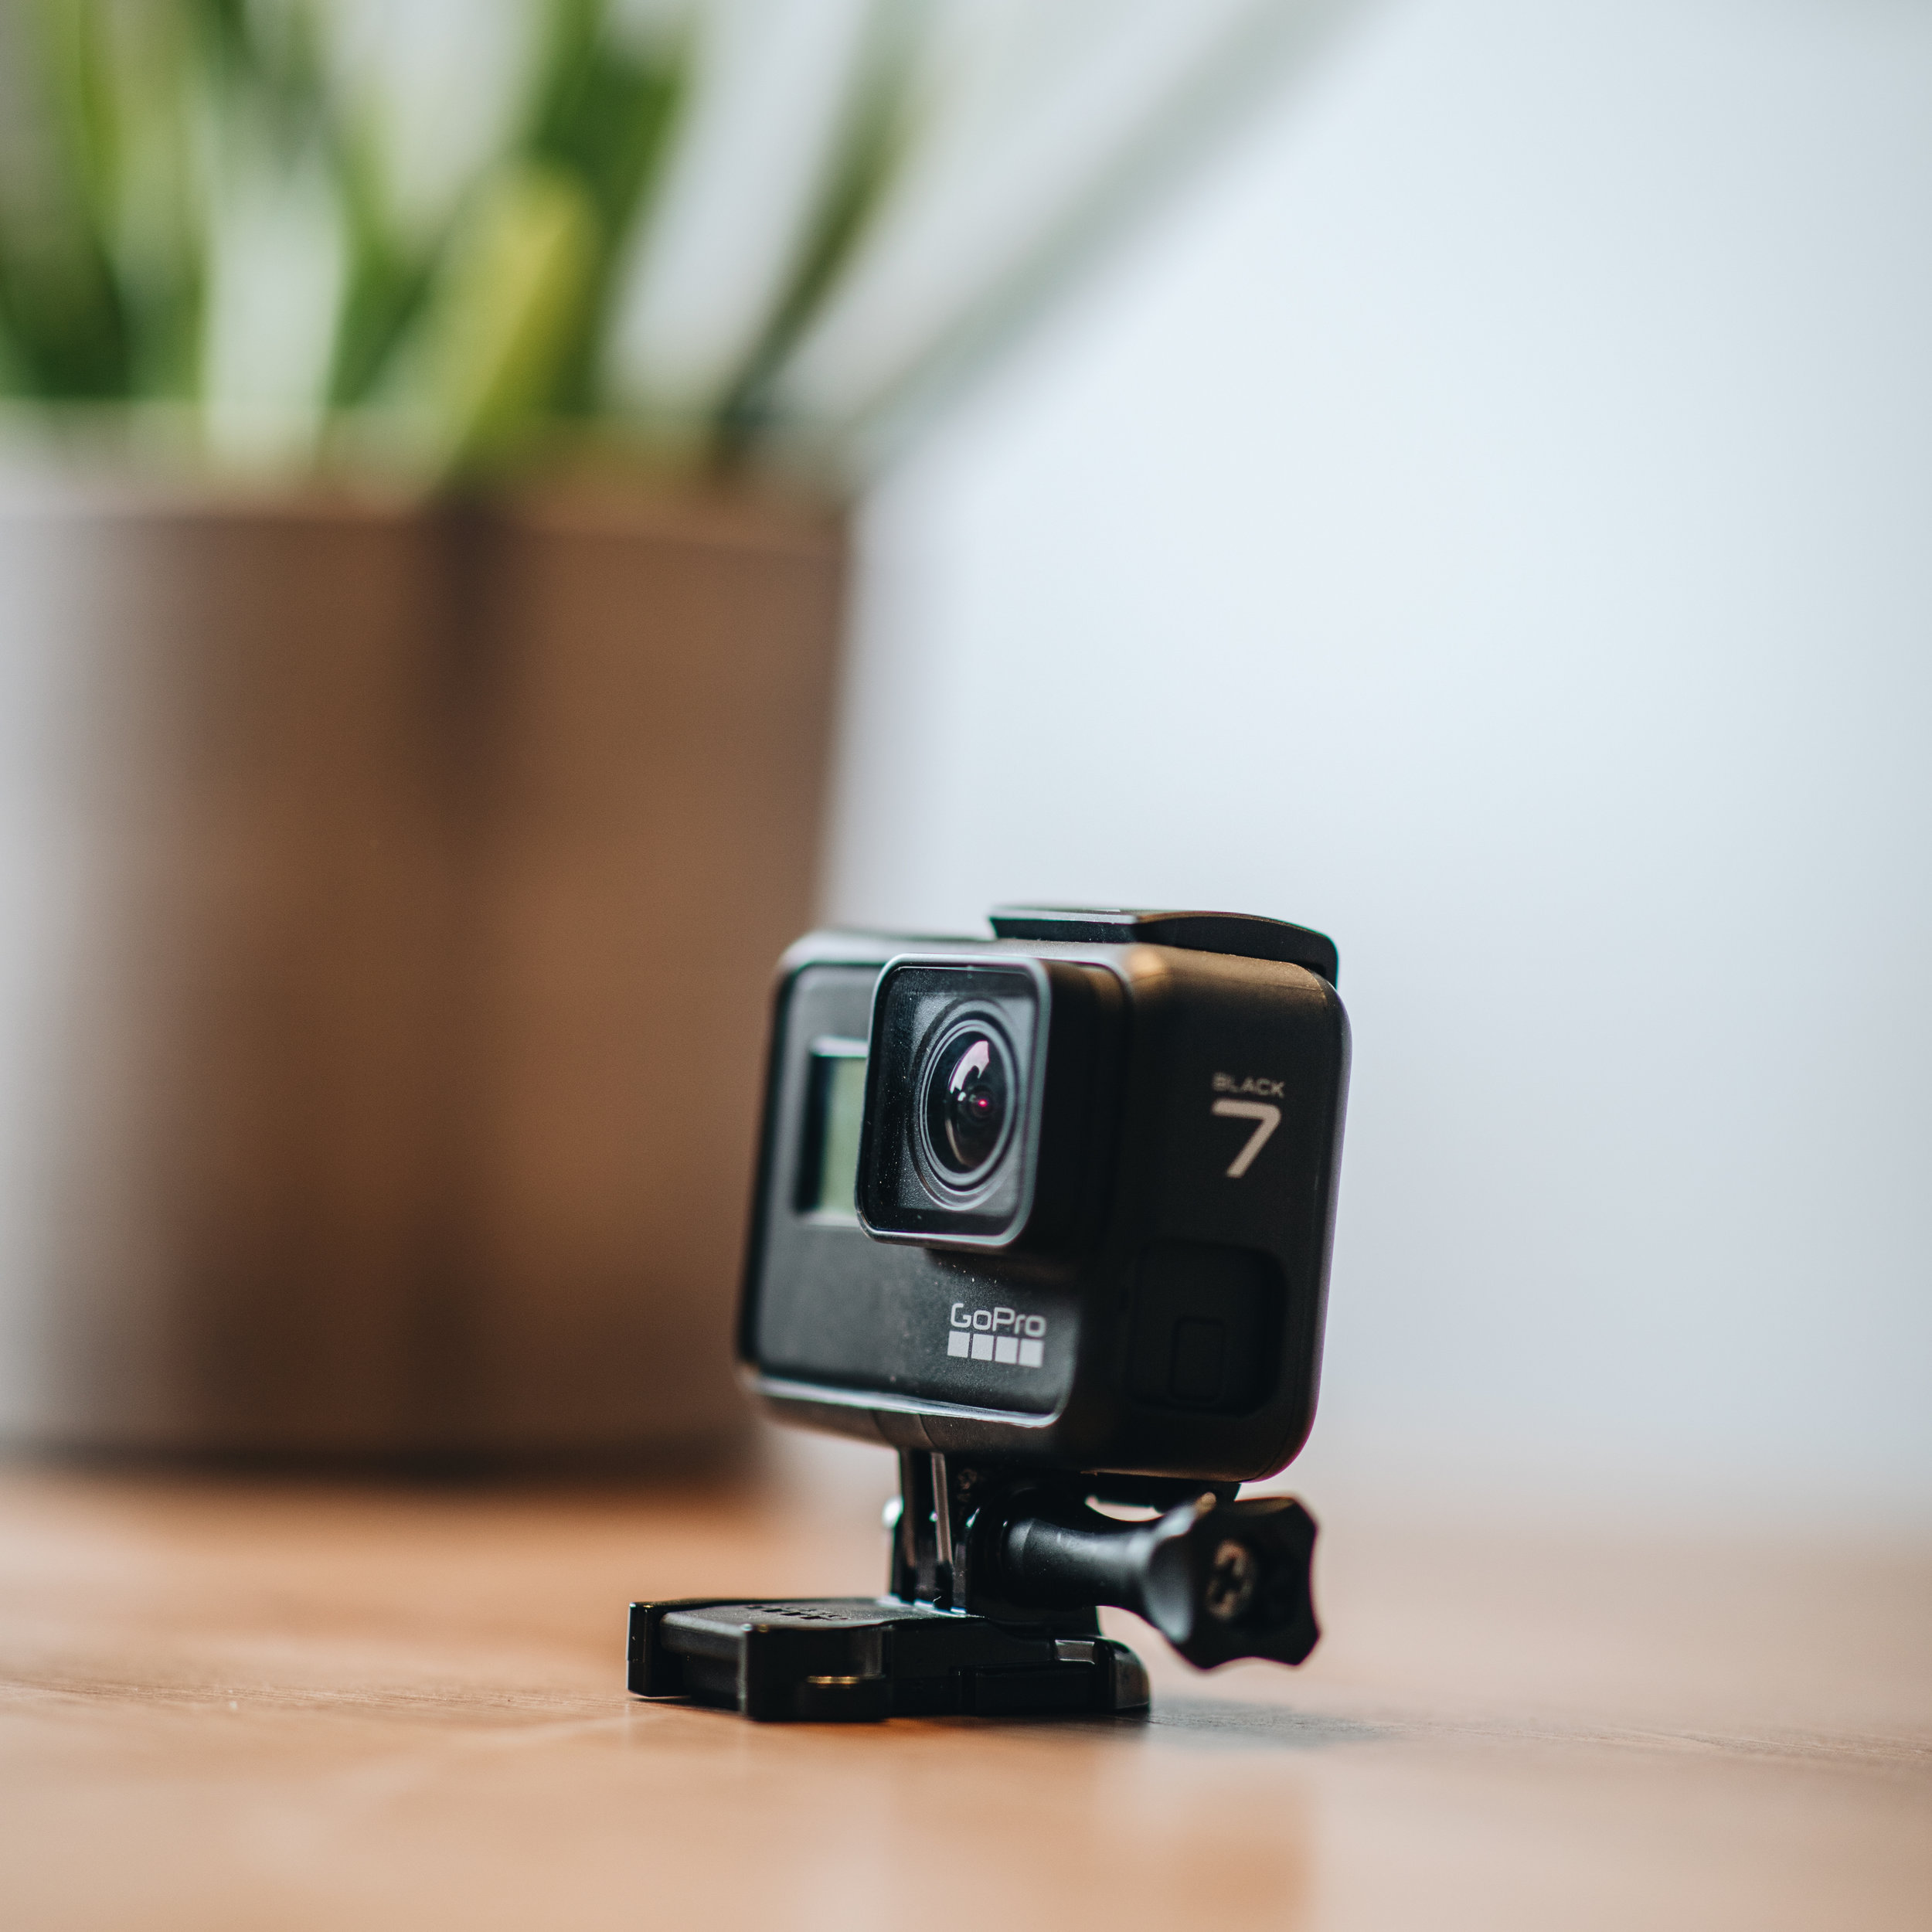 GoPro HERO 7 Black Edition - We all know the situation when we wish we could just bring our camera with us under water. Well if you don't want to invest into a super experience underwater-housing a GoPro is a really good option for you as well! It is not just the fish eye sports camera anymore like it was a few years ago. The adjustments you can do to improve the quality of the camera are extremely good! RAW images and no wide angle for example. It will be hard to say if the photo was taken with a DSLR or action cam! I always throw my GoPro in my backpack just to have it with me in case I come into a situation I need it! It is super small and light anyways!